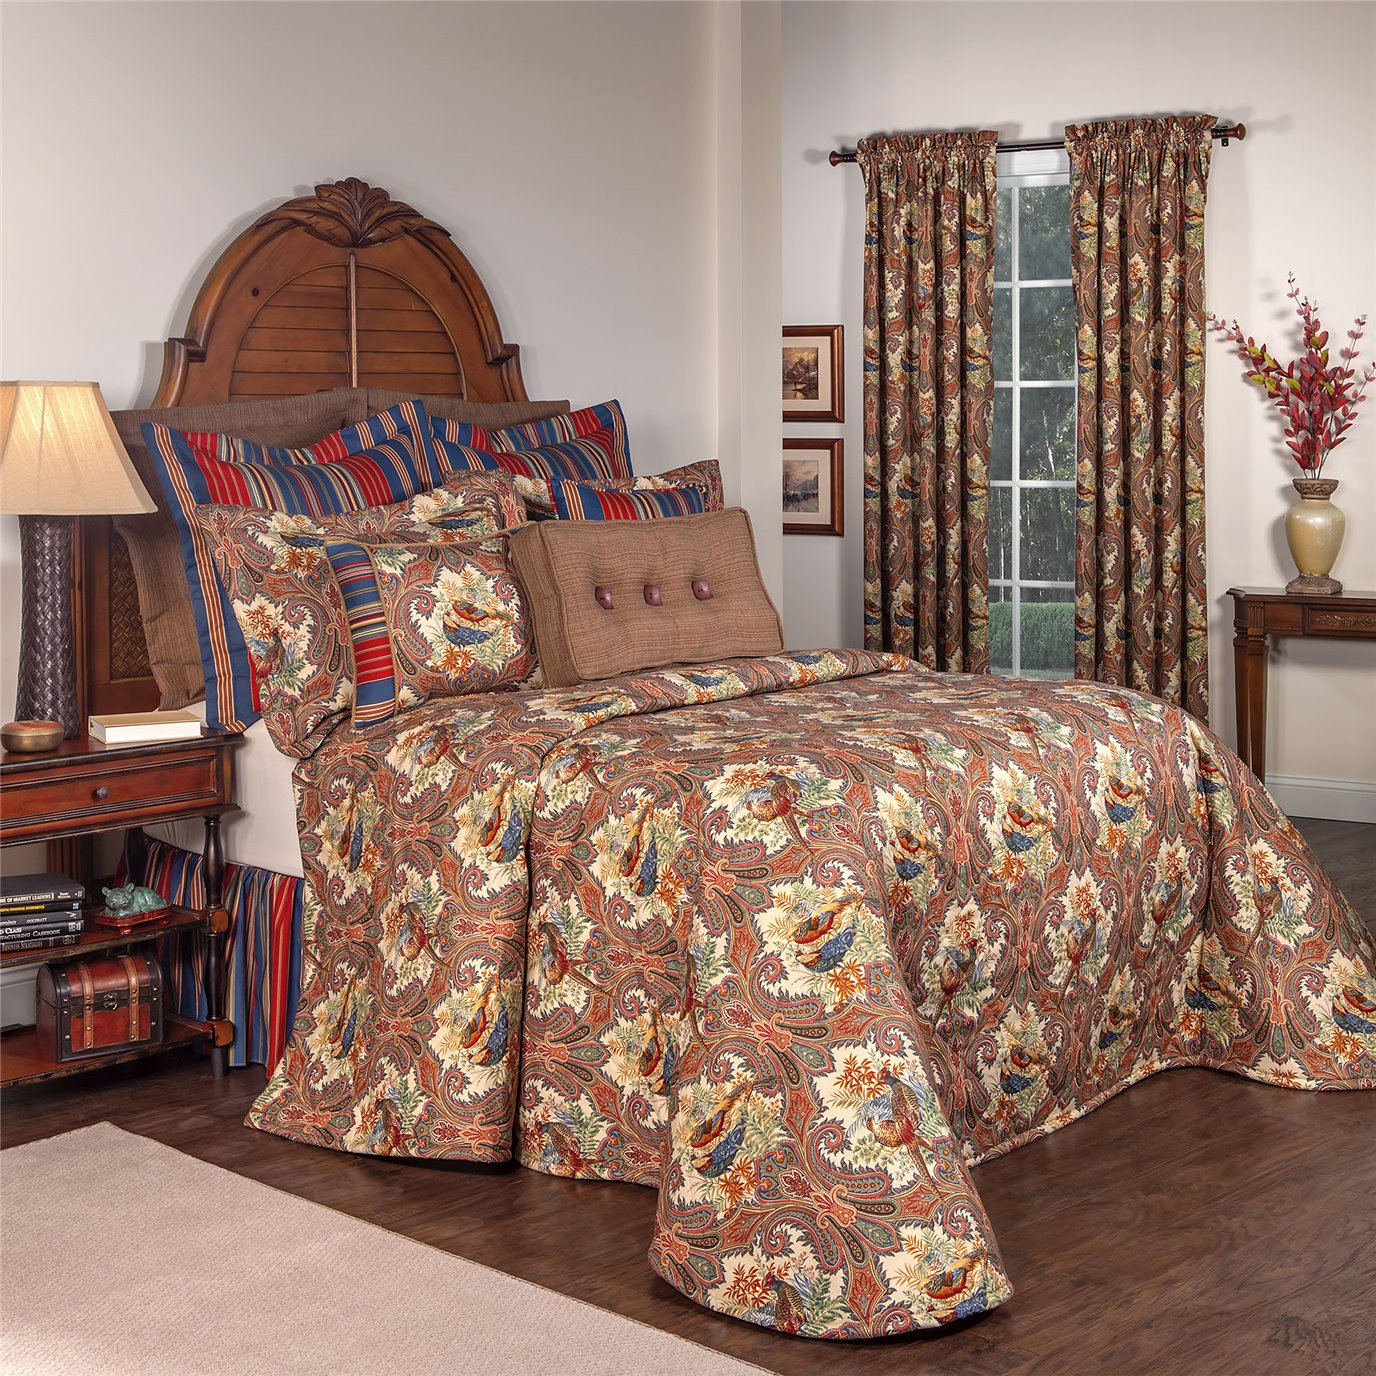 Royal Pheasant Queen Bedspread